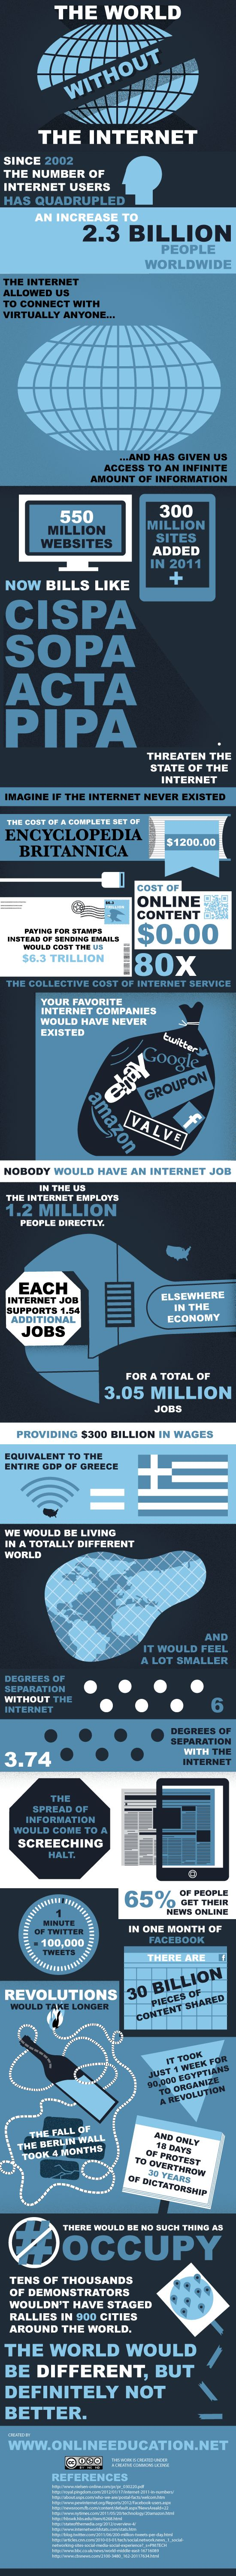 World without Internet, this is kind of old but such an interesting infographic! The Internet is SO huge now.